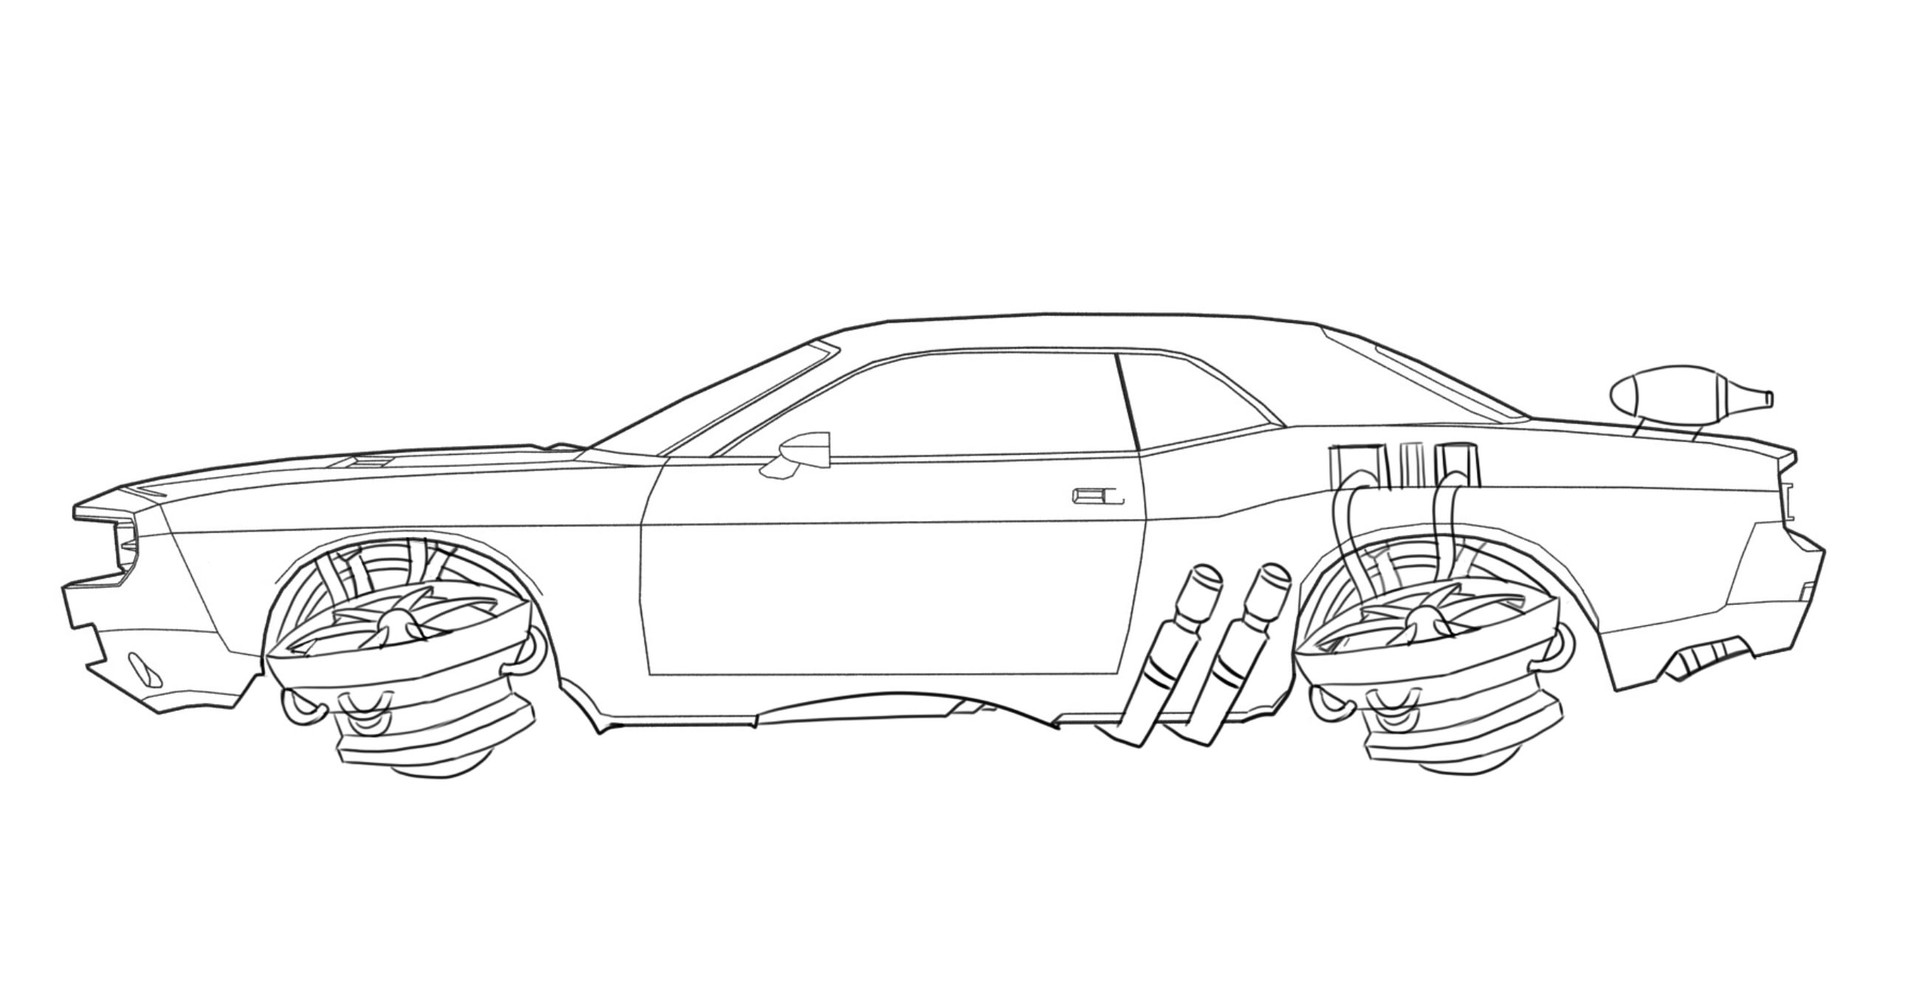 Aiden mockridge ba game art year 1 future car design aiden mockridge future car blueprint 1 malvernweather Choice Image